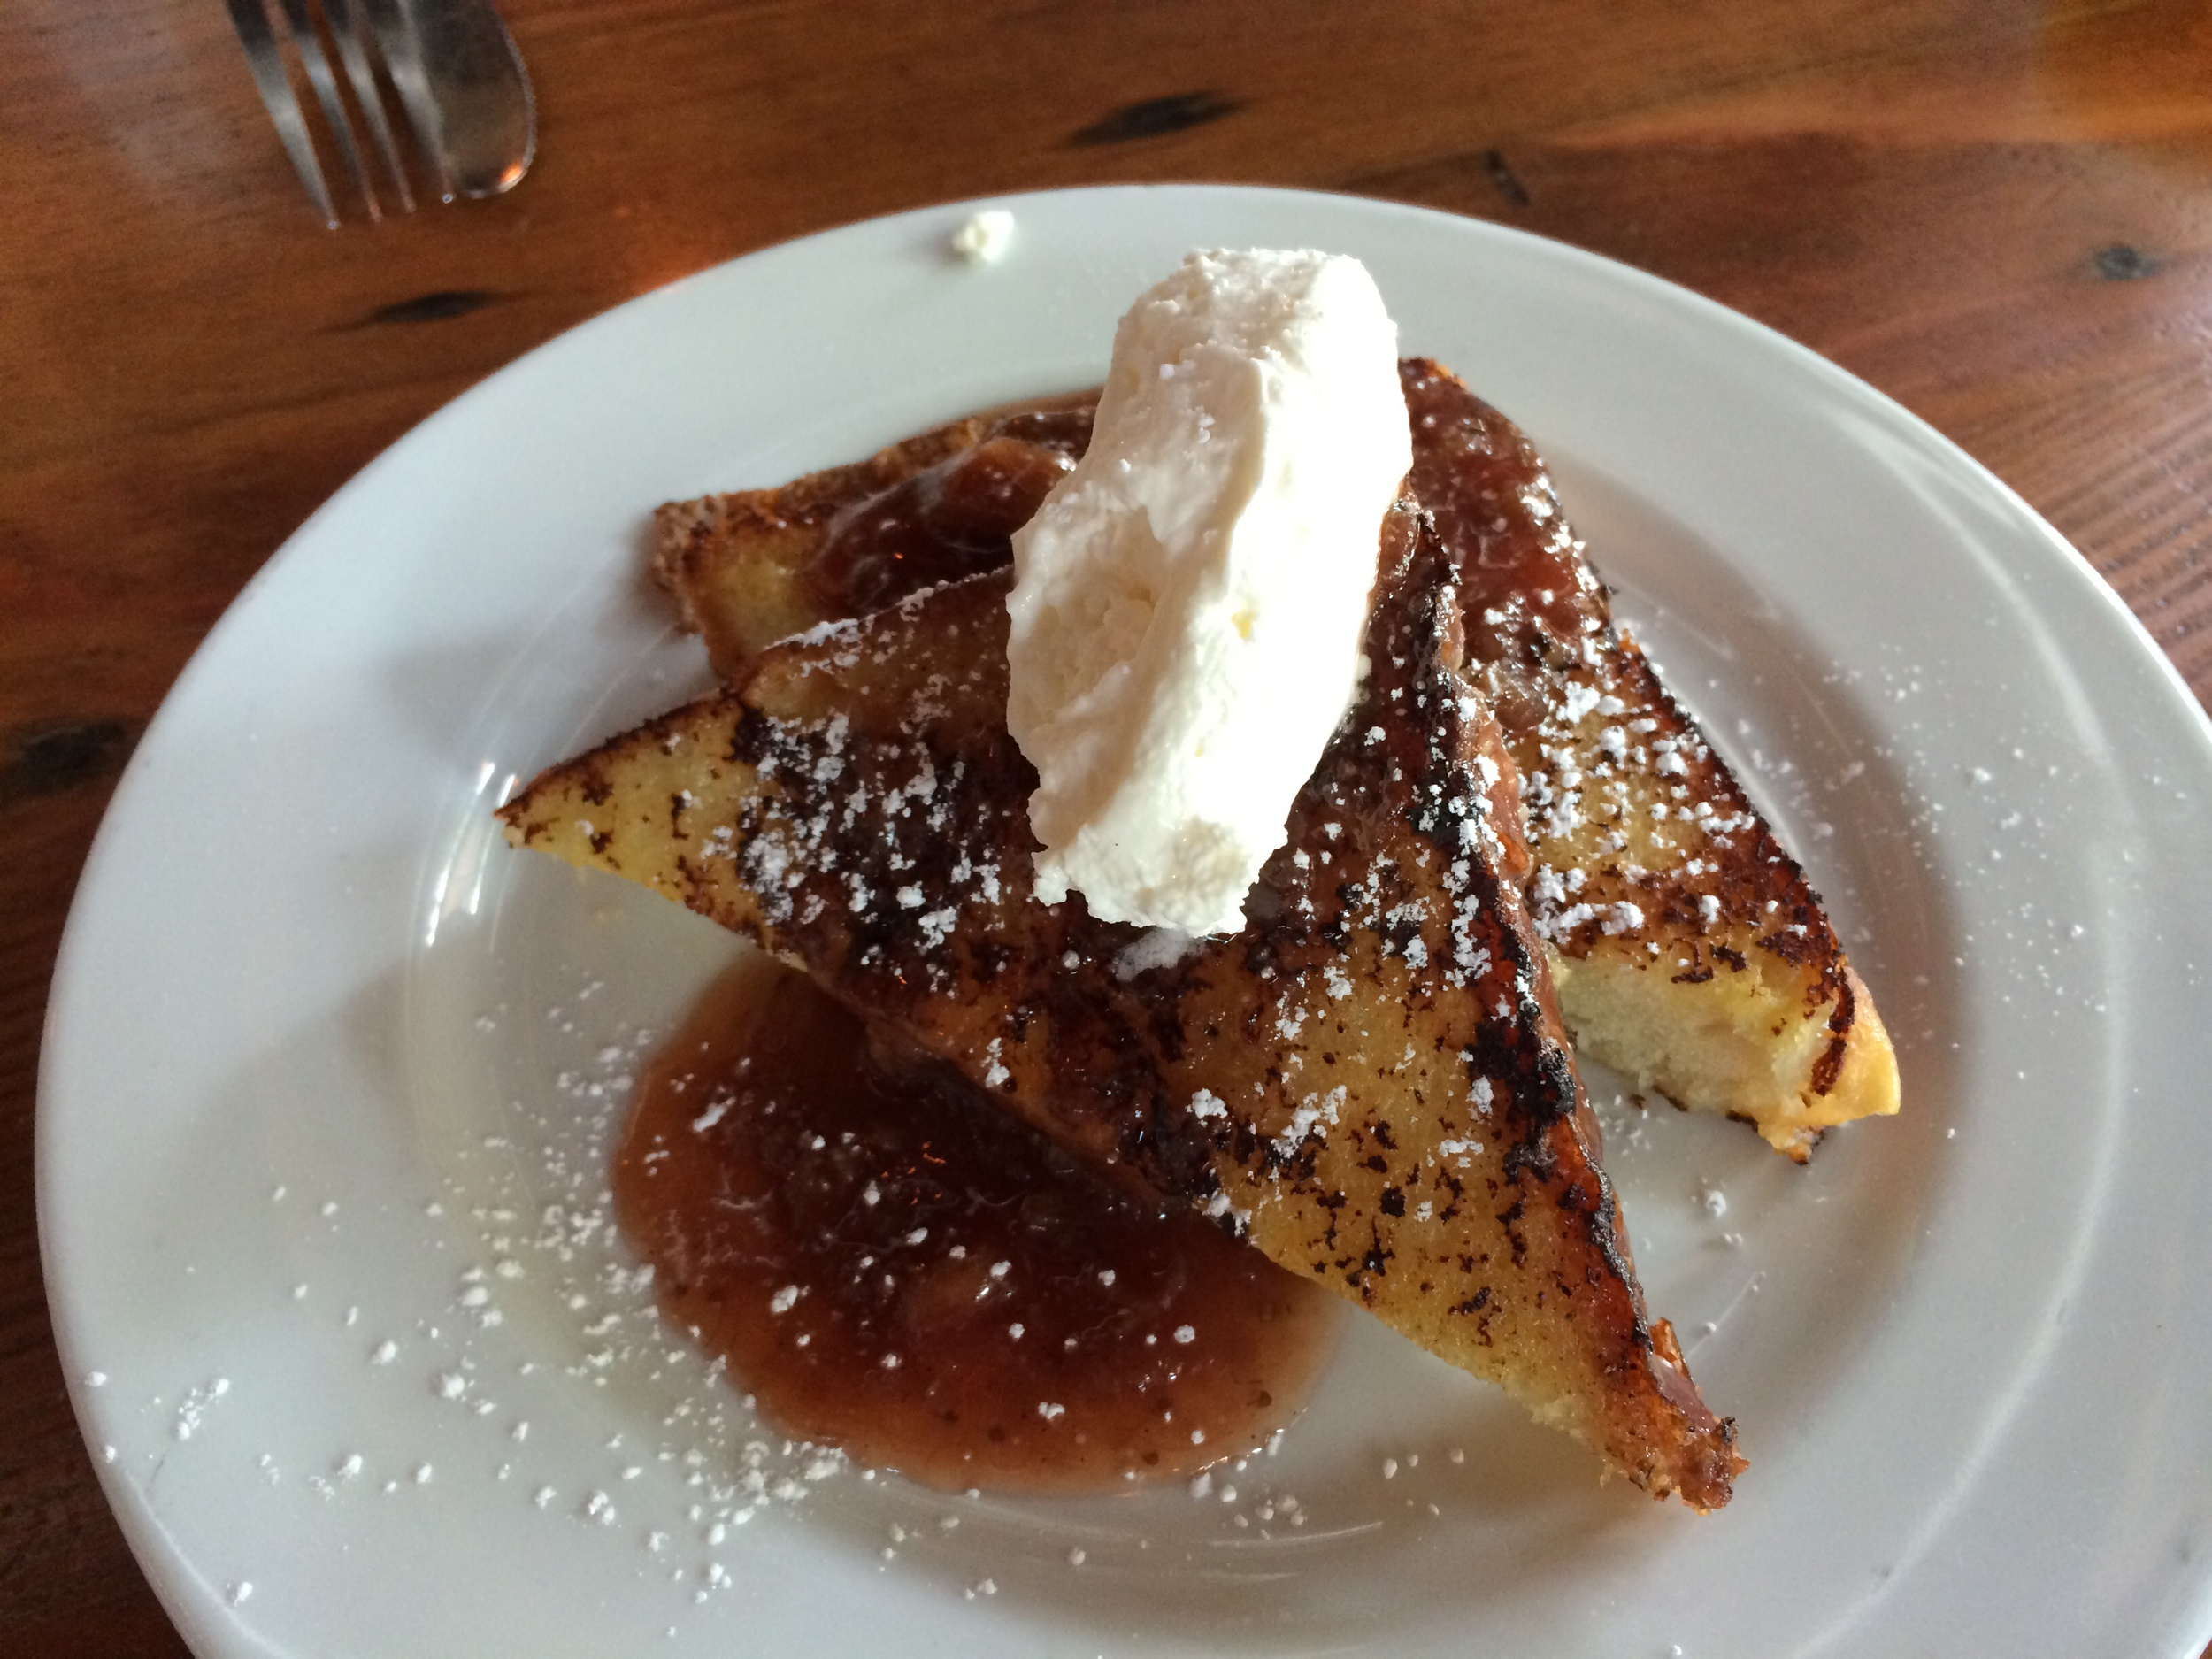 Half portion of french toast